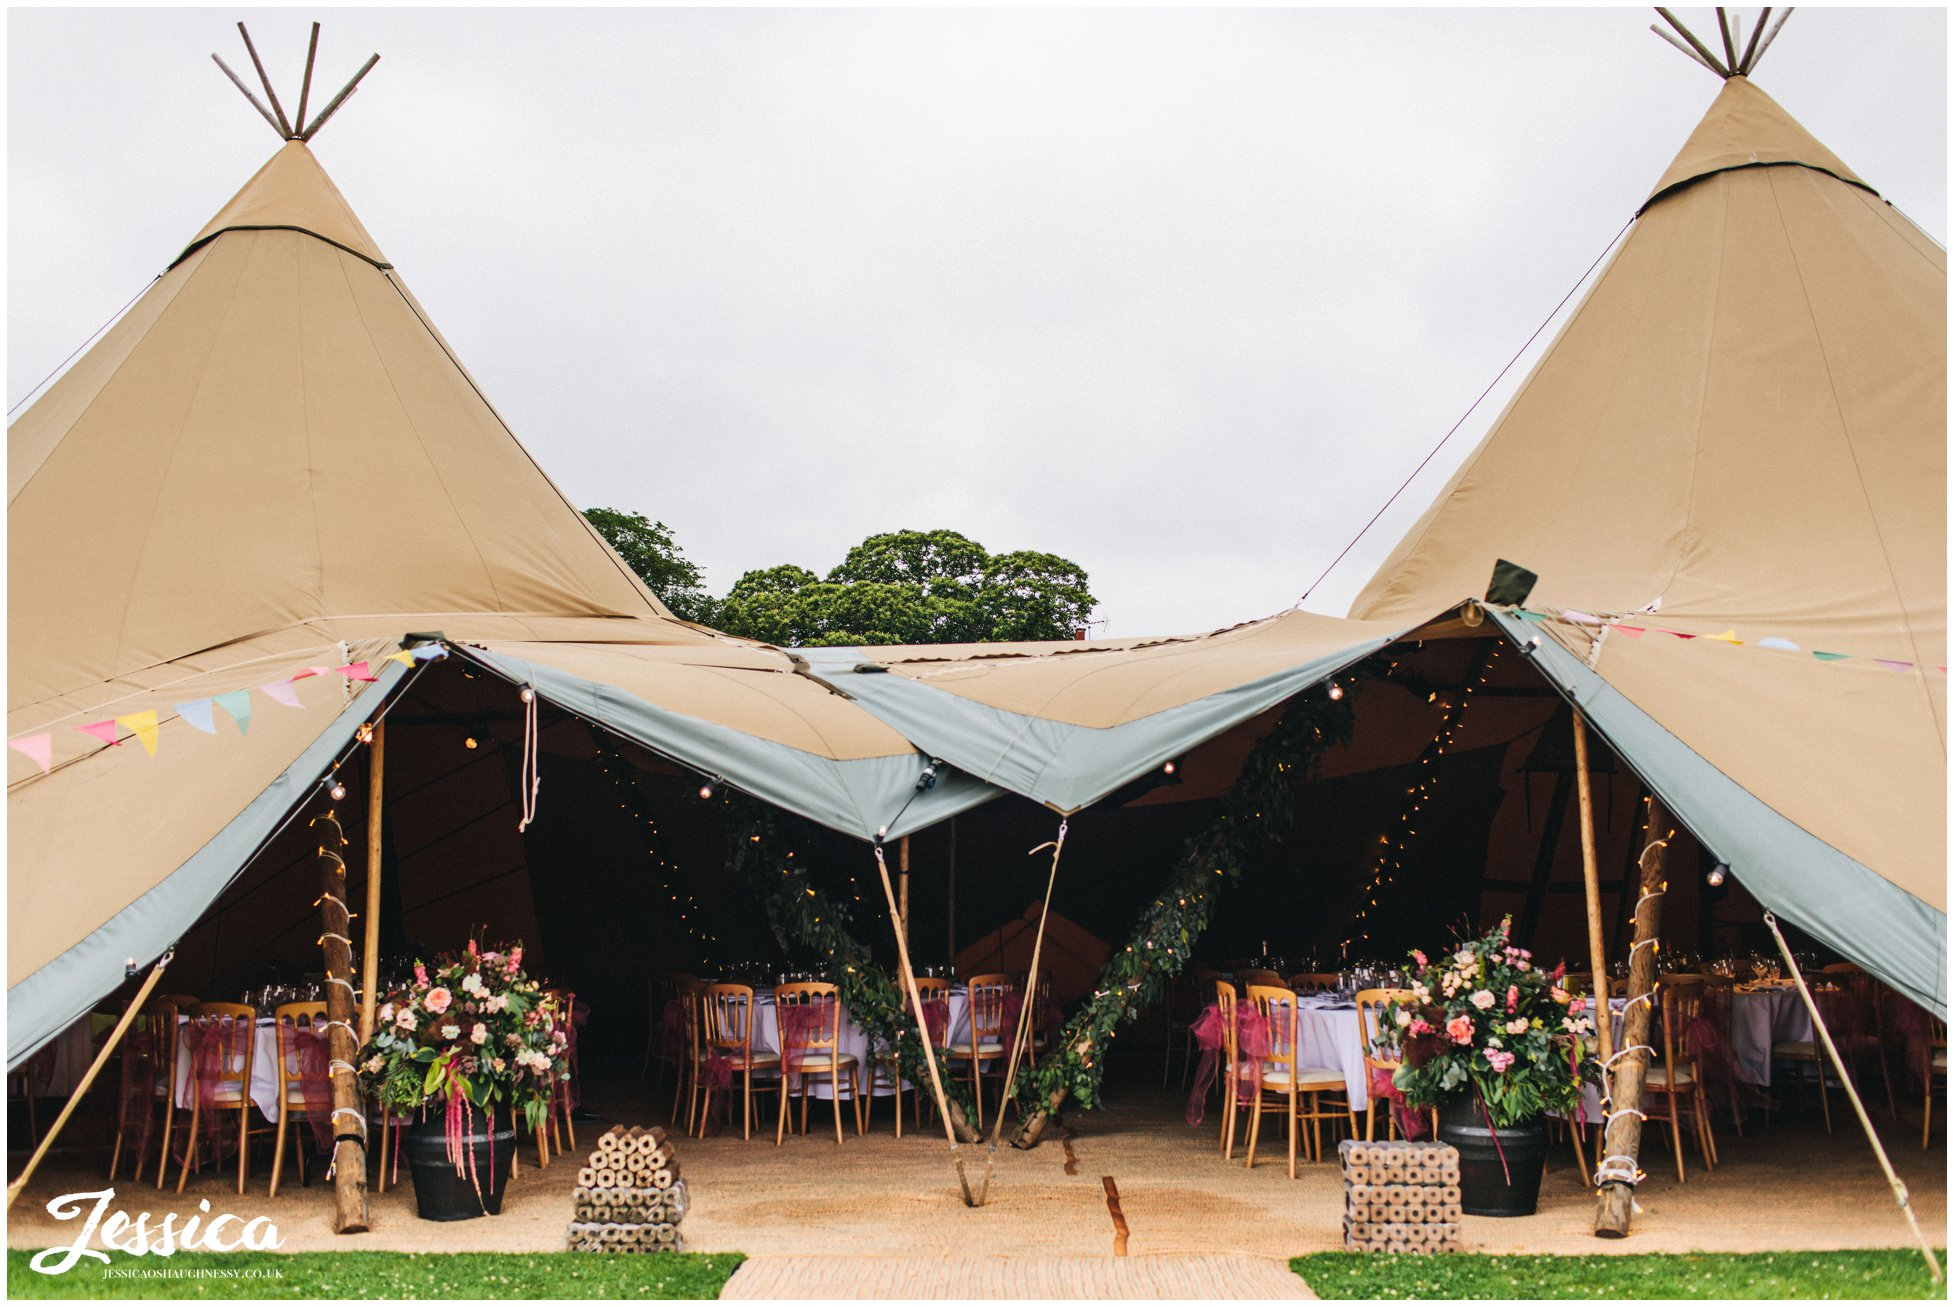 the tipi decorated in bright colours & flowers